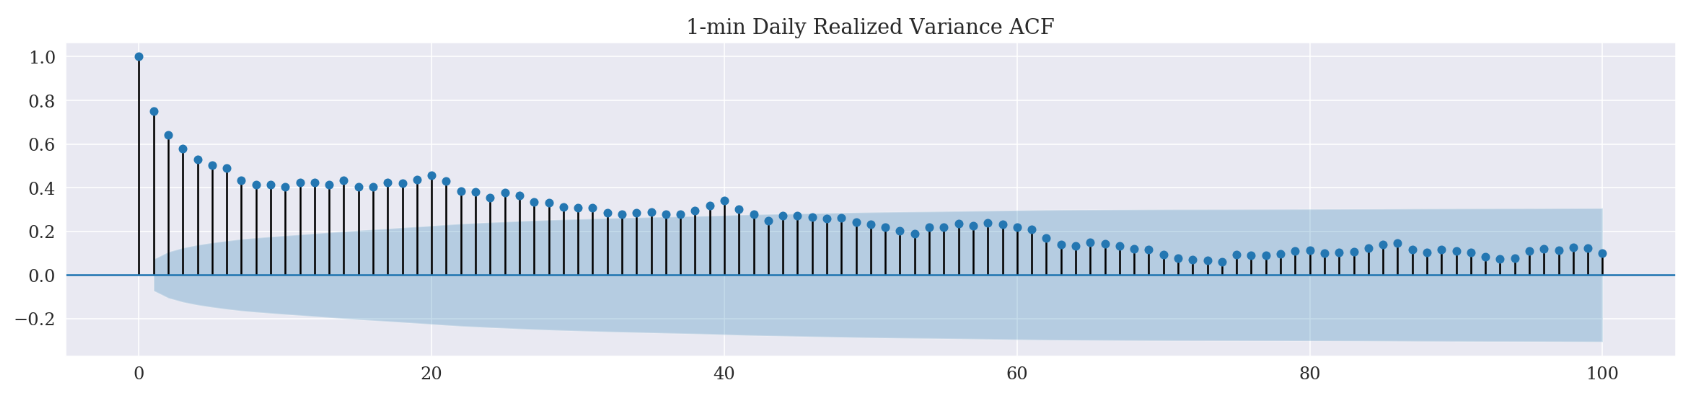 1_min_daily_realized_variance_acf.png